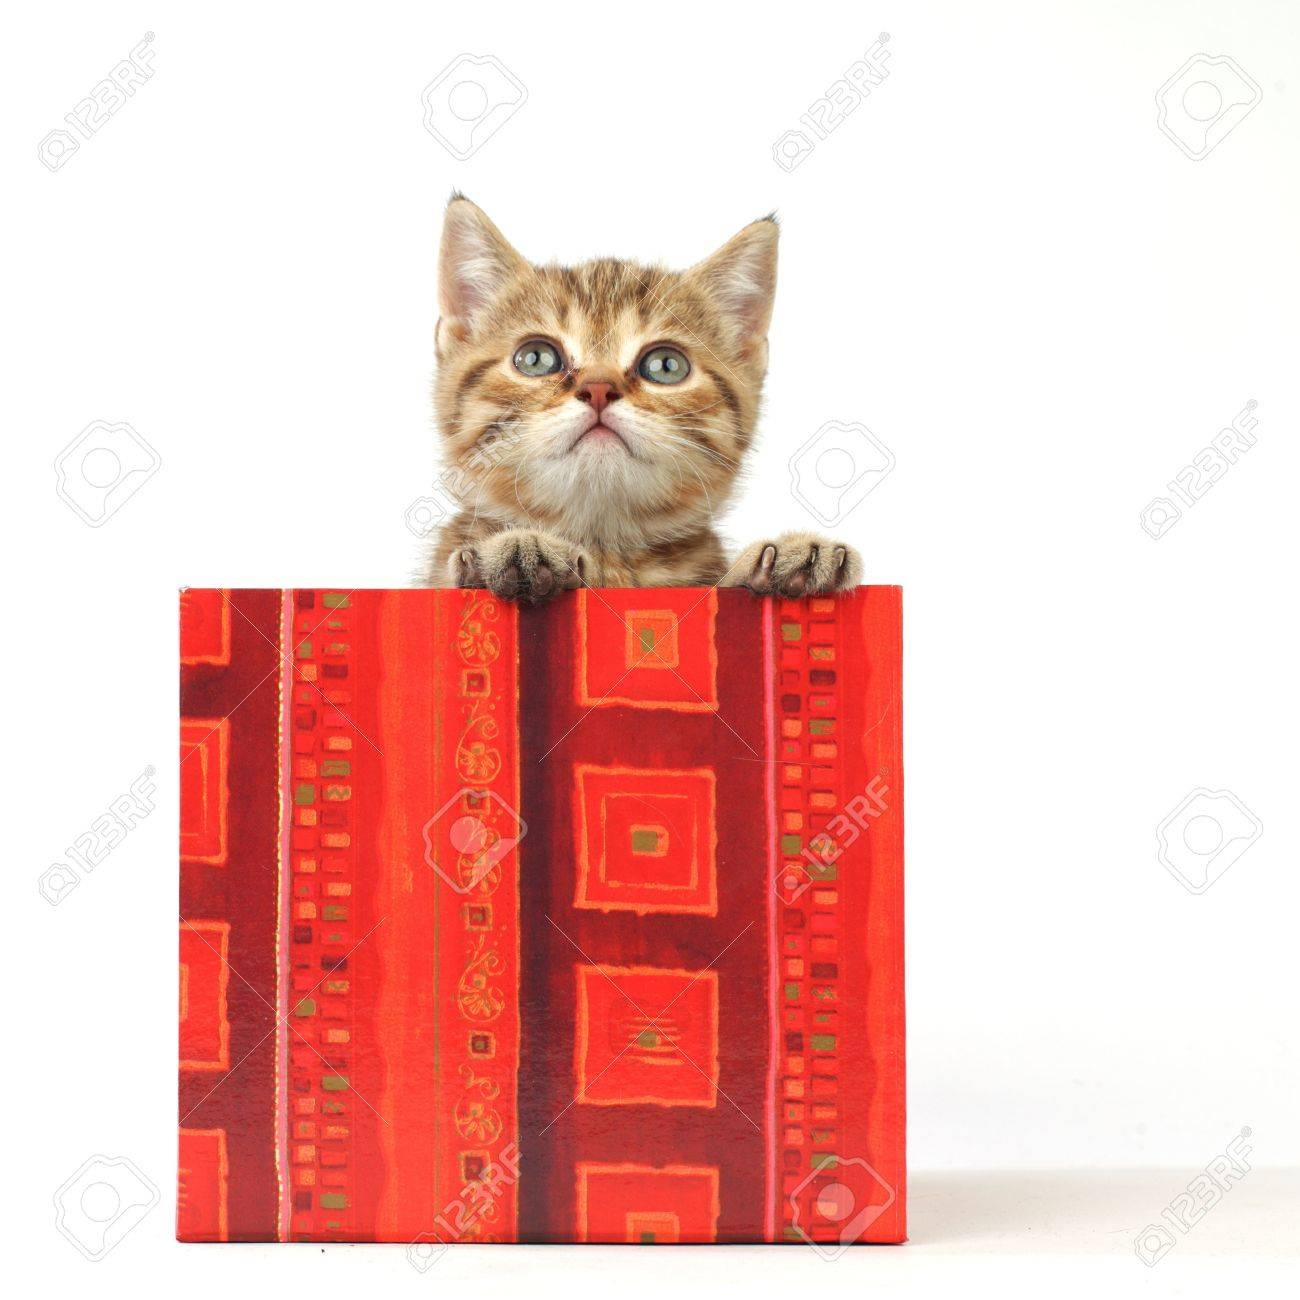 cat in gift box isolated on white background Stock Photo - 8415744